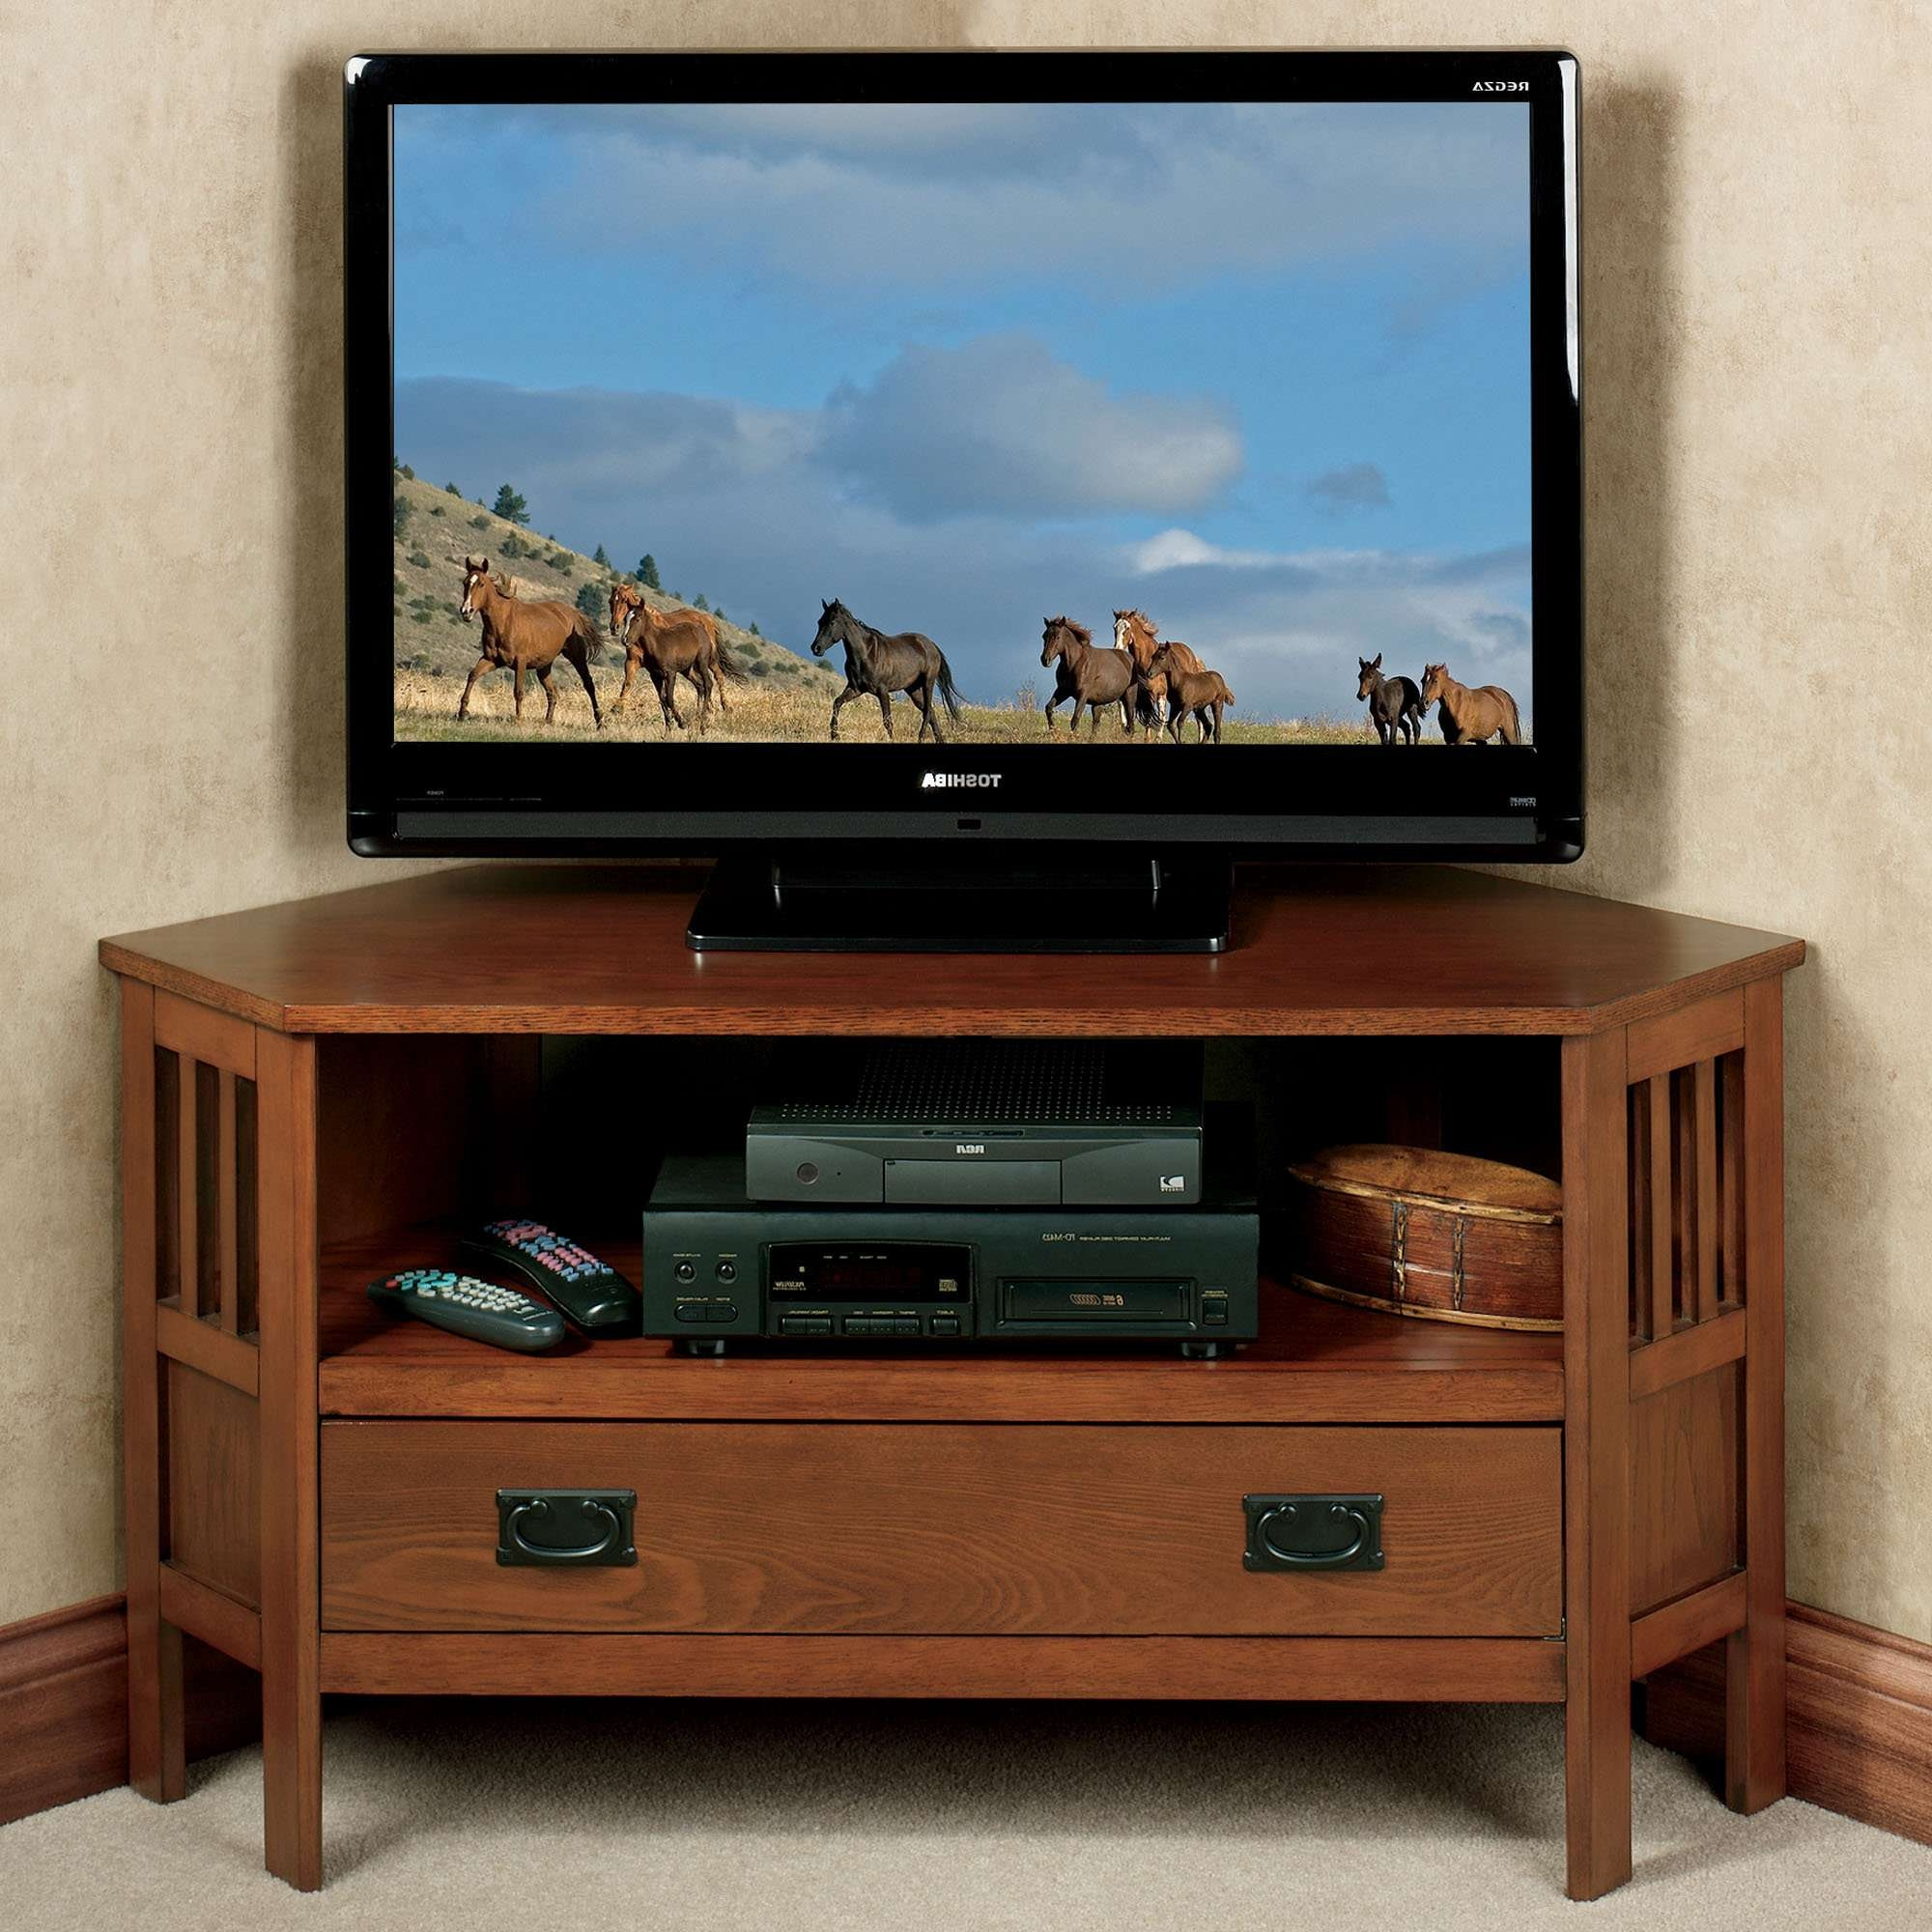 Fresh Corner Tv Stand For 55 Inch Flat Screen 78 With Additional Intended For Wooden Tv Stands For 55 Inch Flat Screen (View 4 of 15)